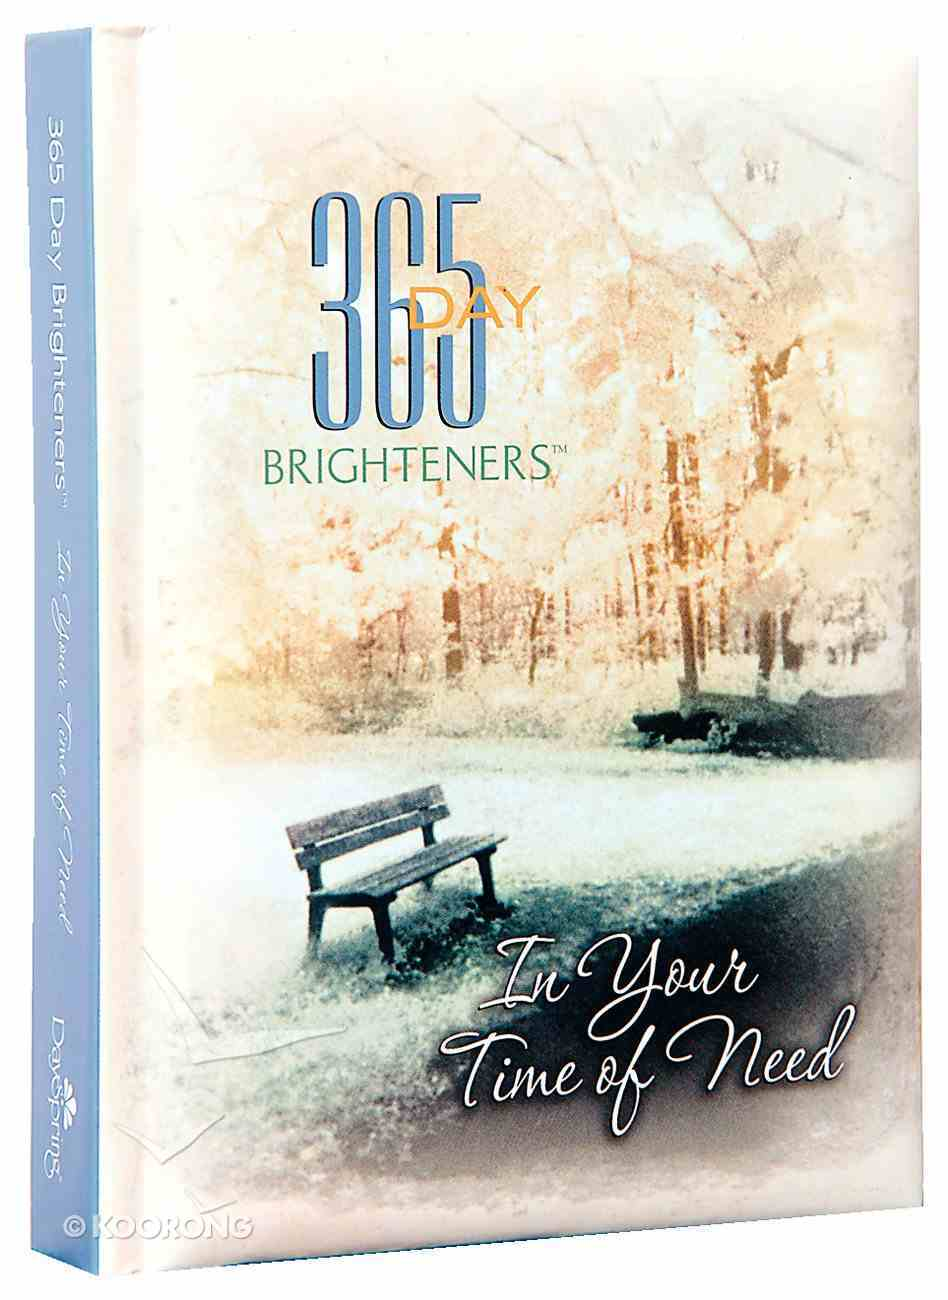 In Your Time of Need (365 Day Brighteners Series) Hardback